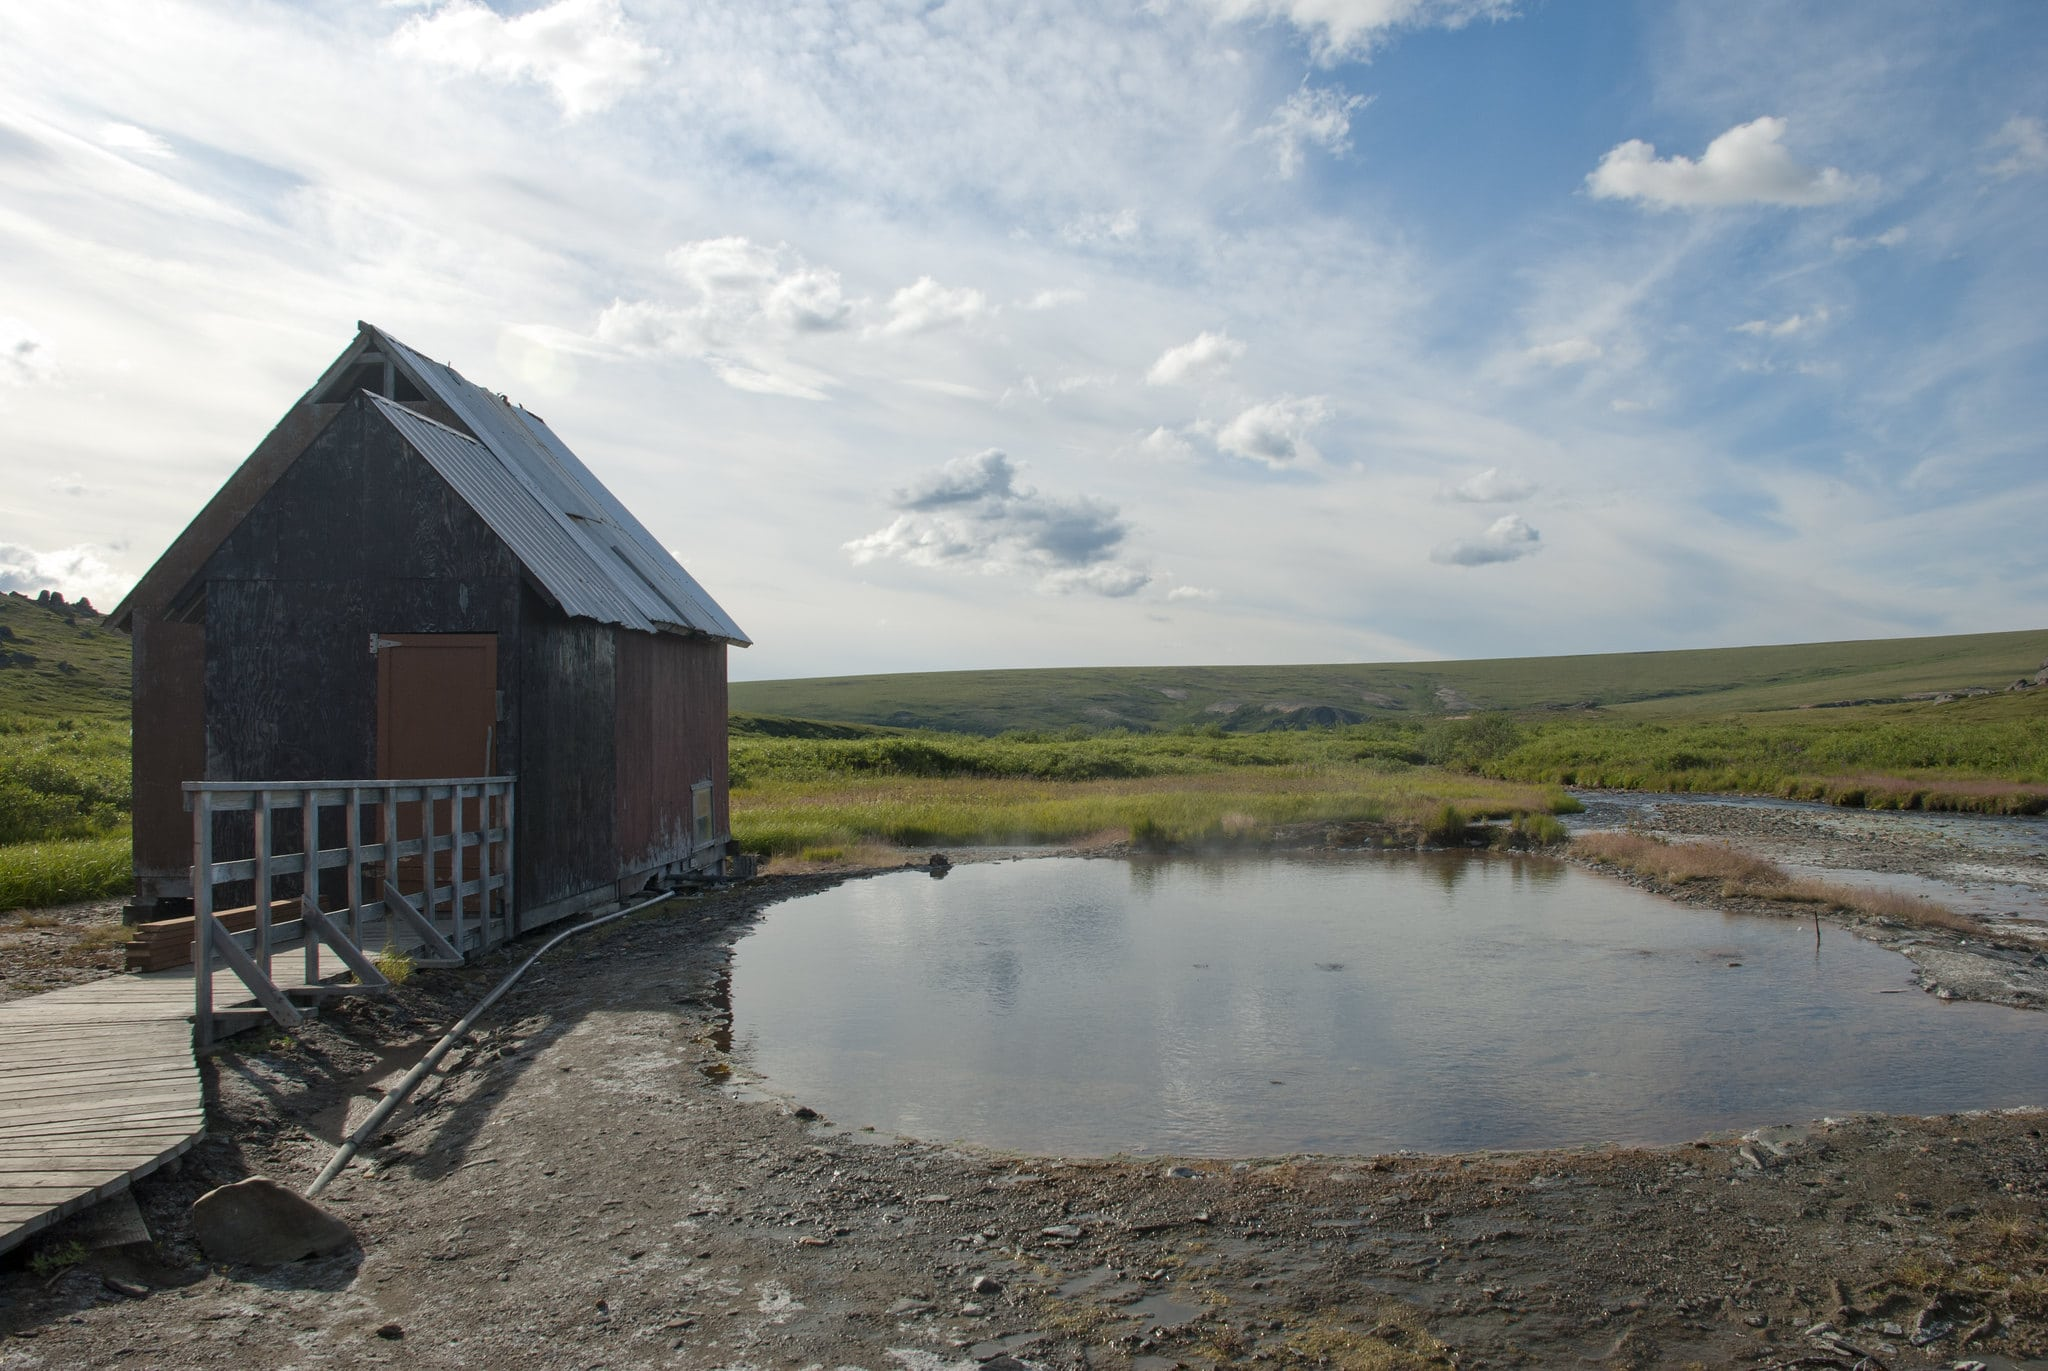 Image of a bathhouse and outdoor hot spring at Serpentine Hot Springs, Alaska